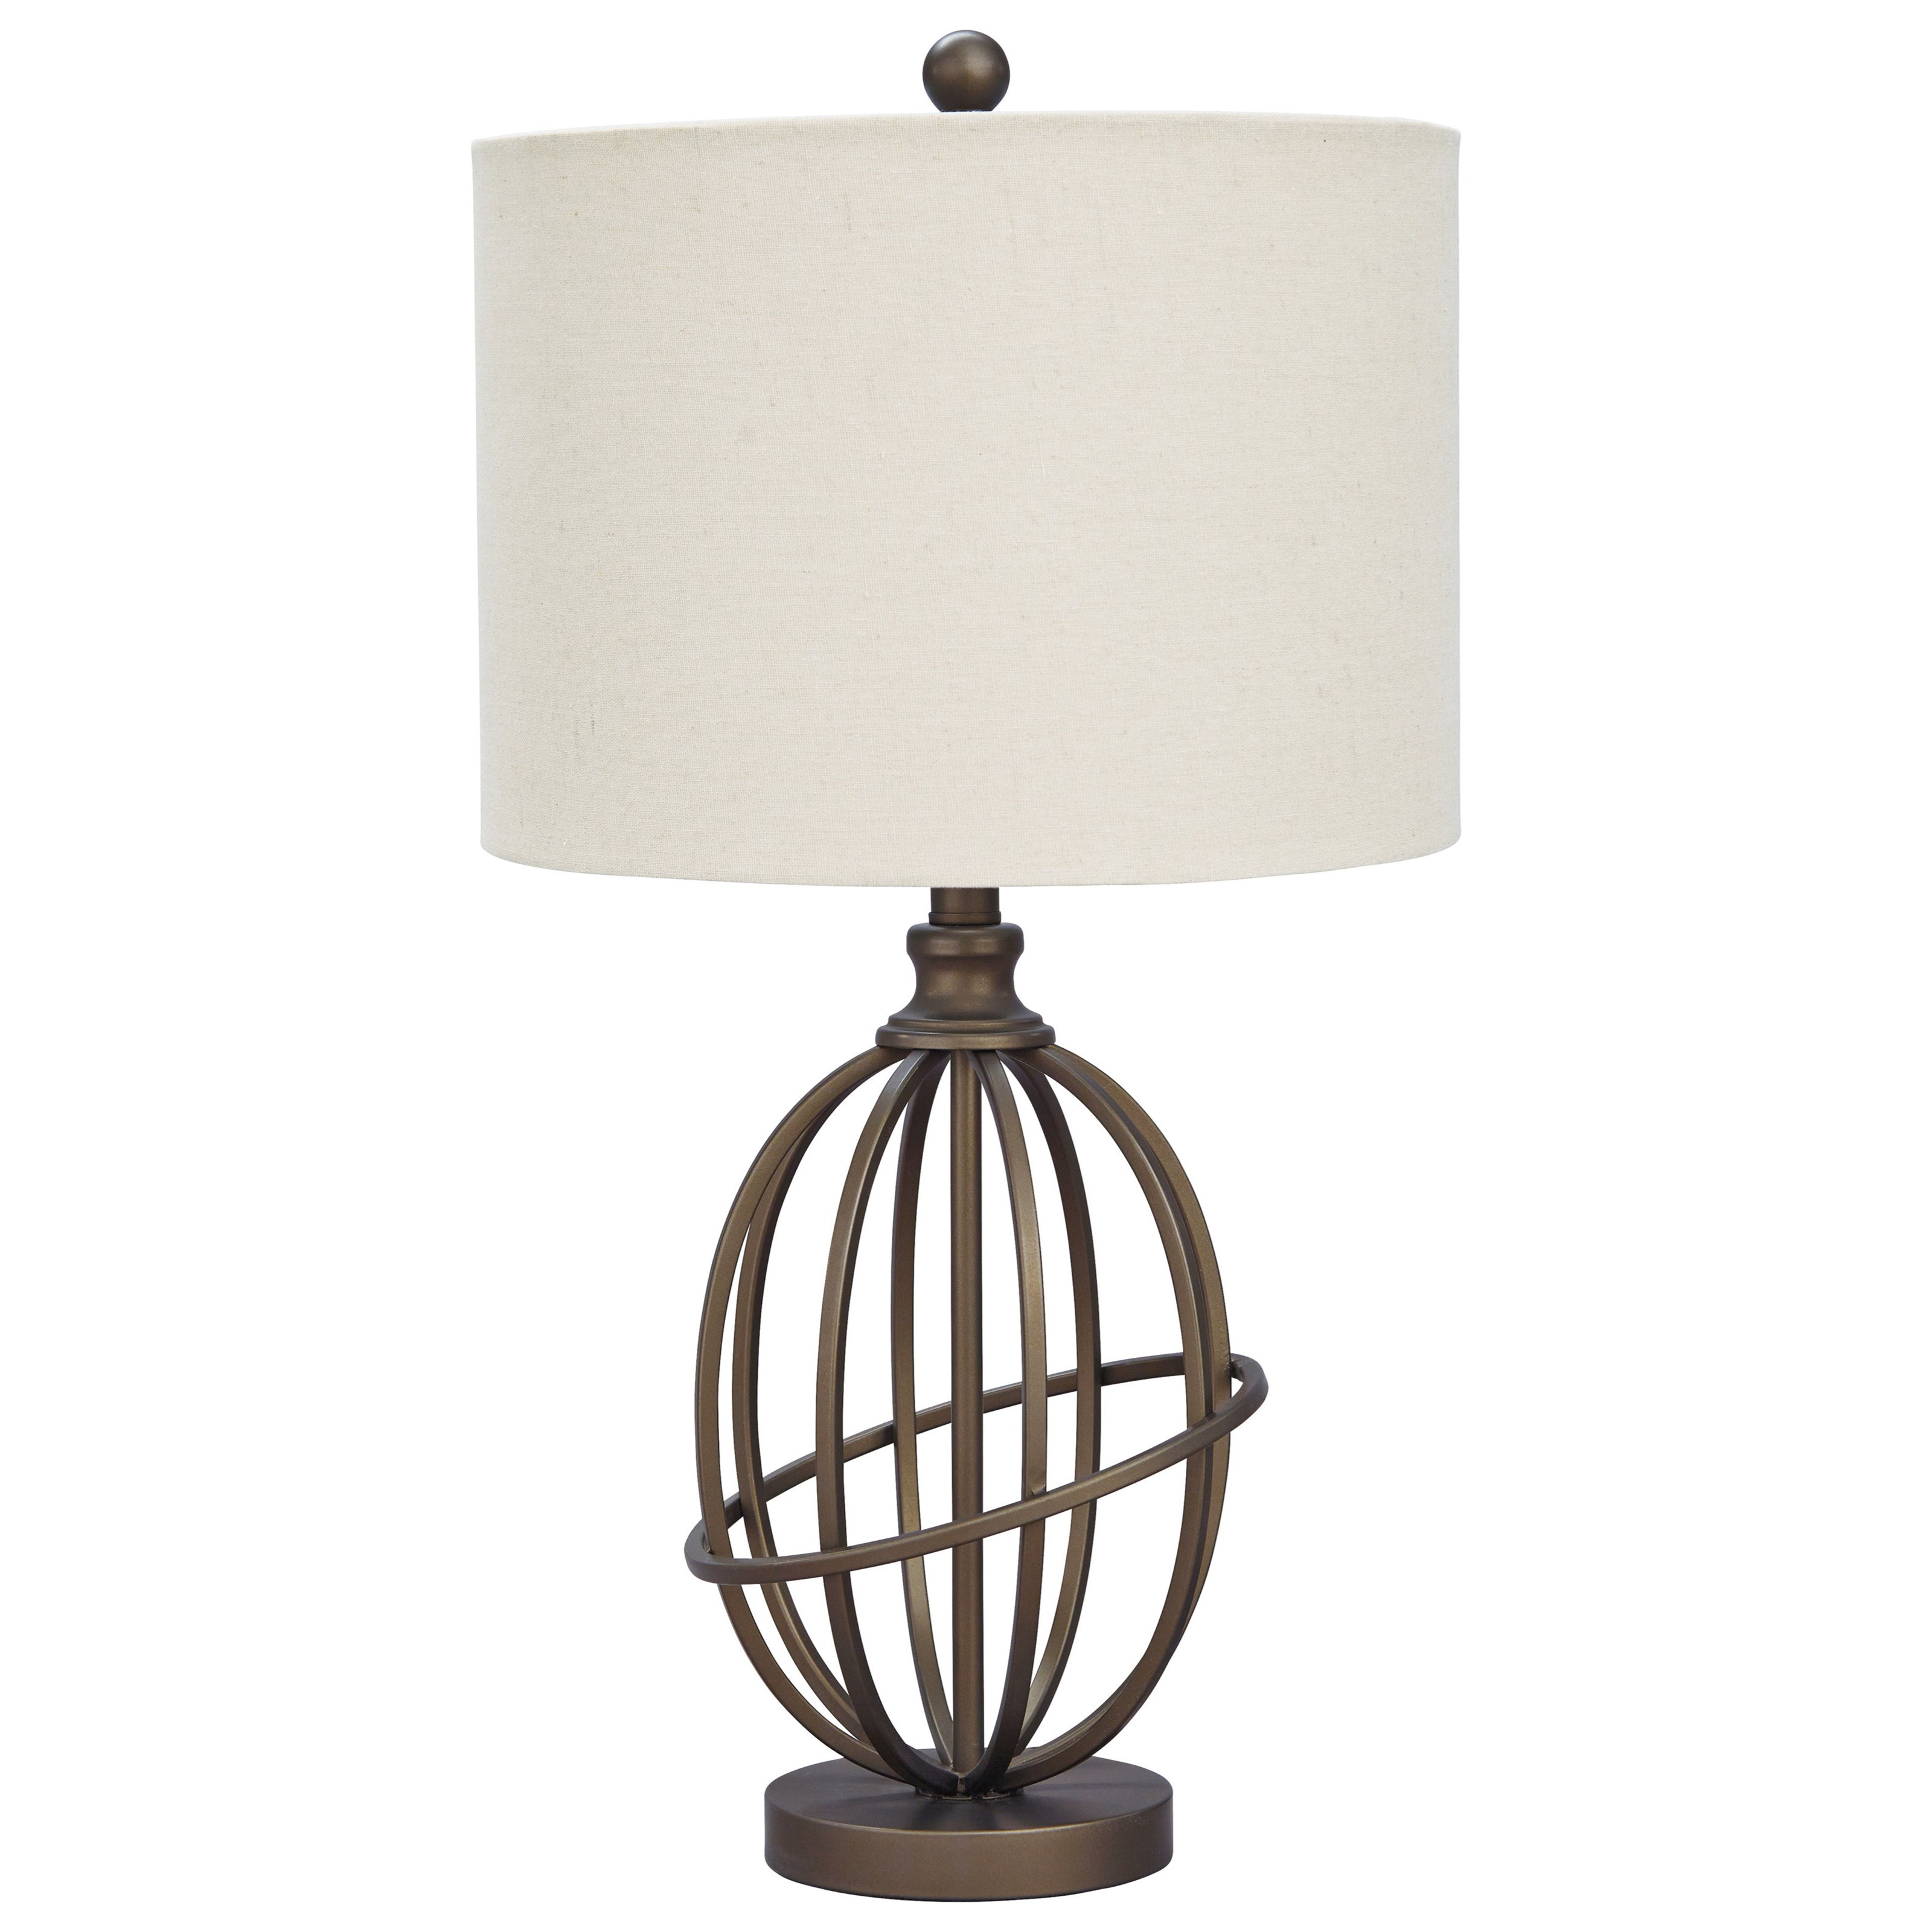 Signature Design By Ashley Lamps Vintage Style Manase Bronze